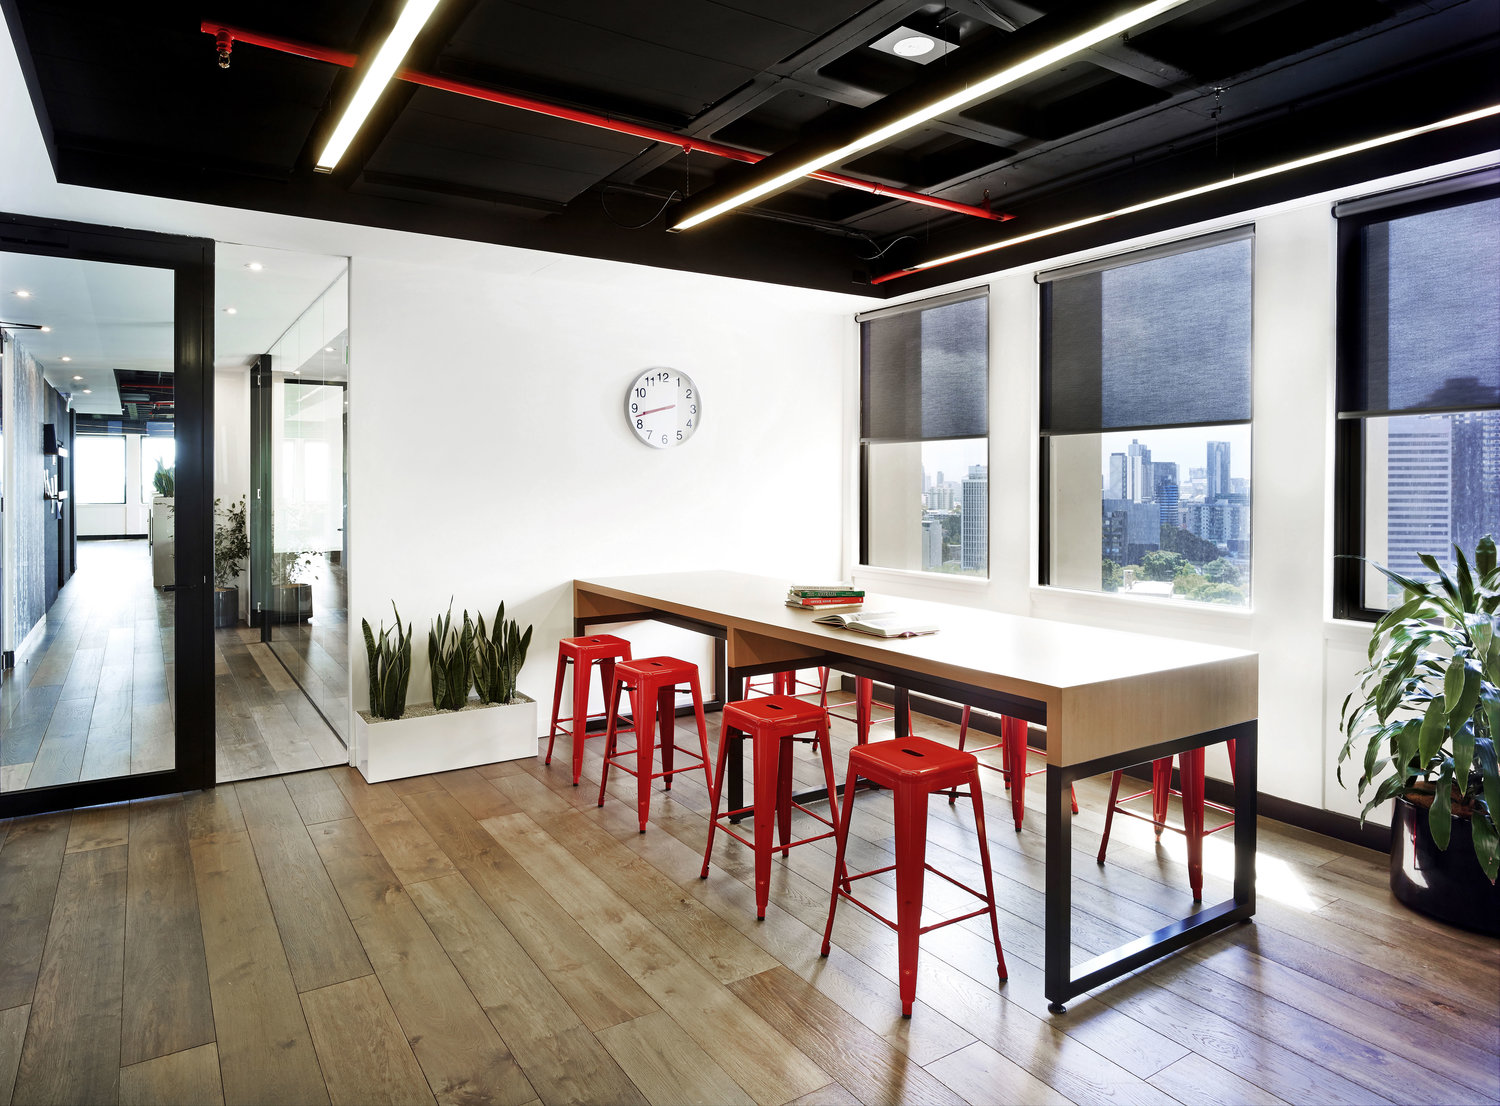 Oxygen Ventures / LK Group - Central kitchen and restorative space by STUDIOMINT 2014